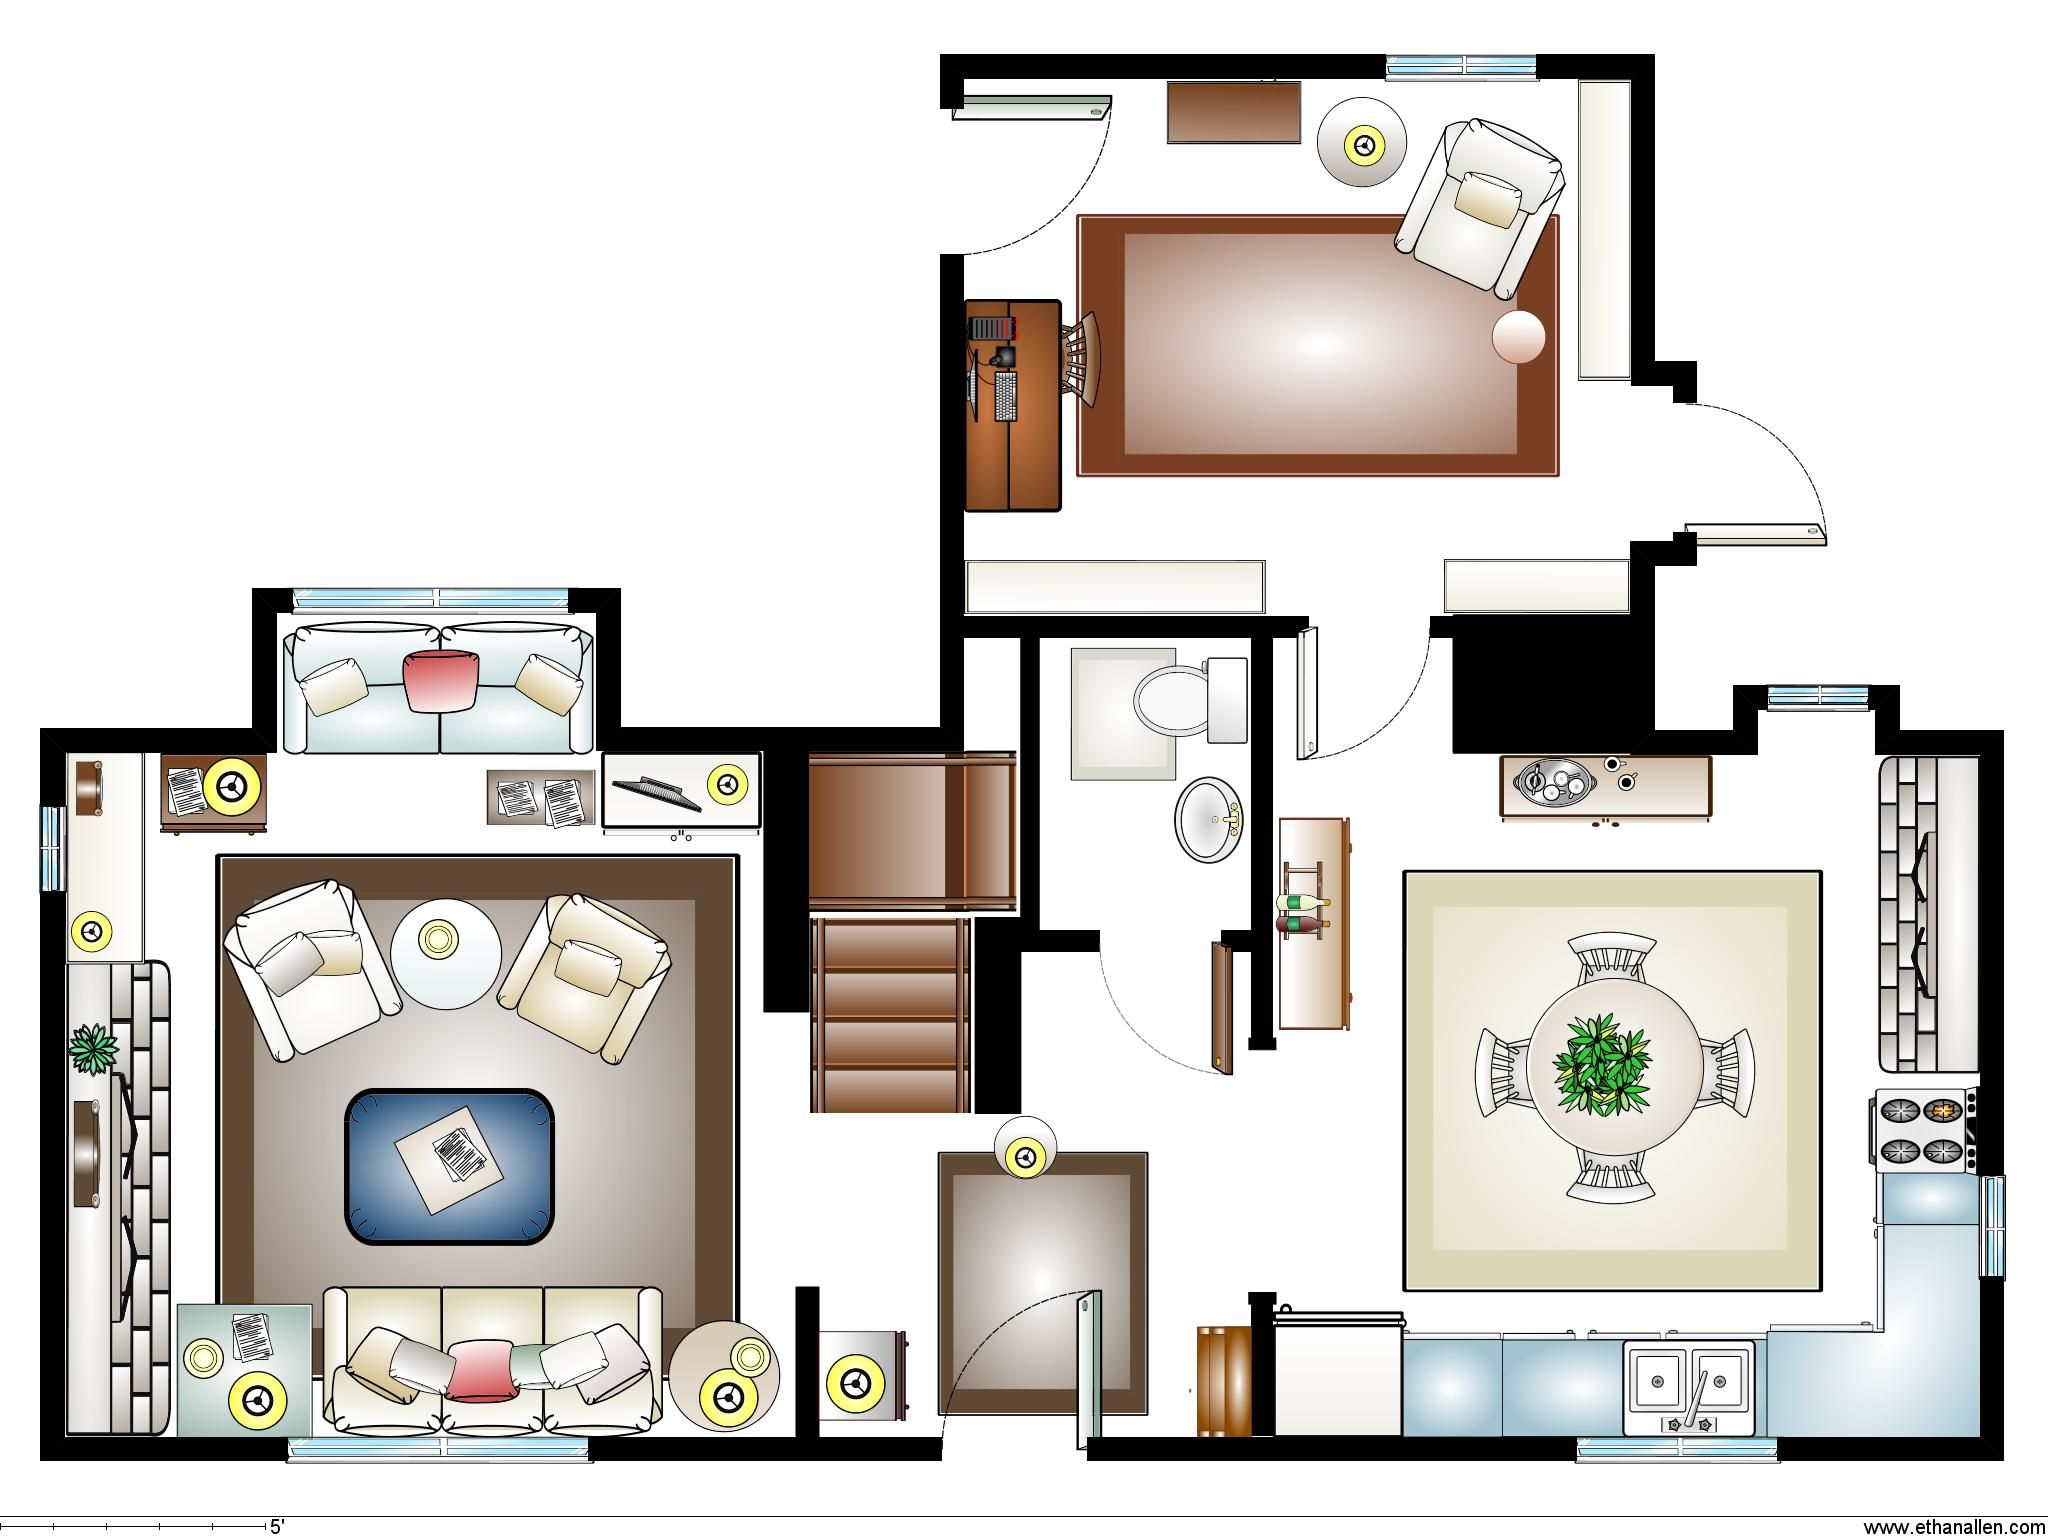 floor plan for rosehill cottage in the movie floor plan for rosehill cottage in the movie